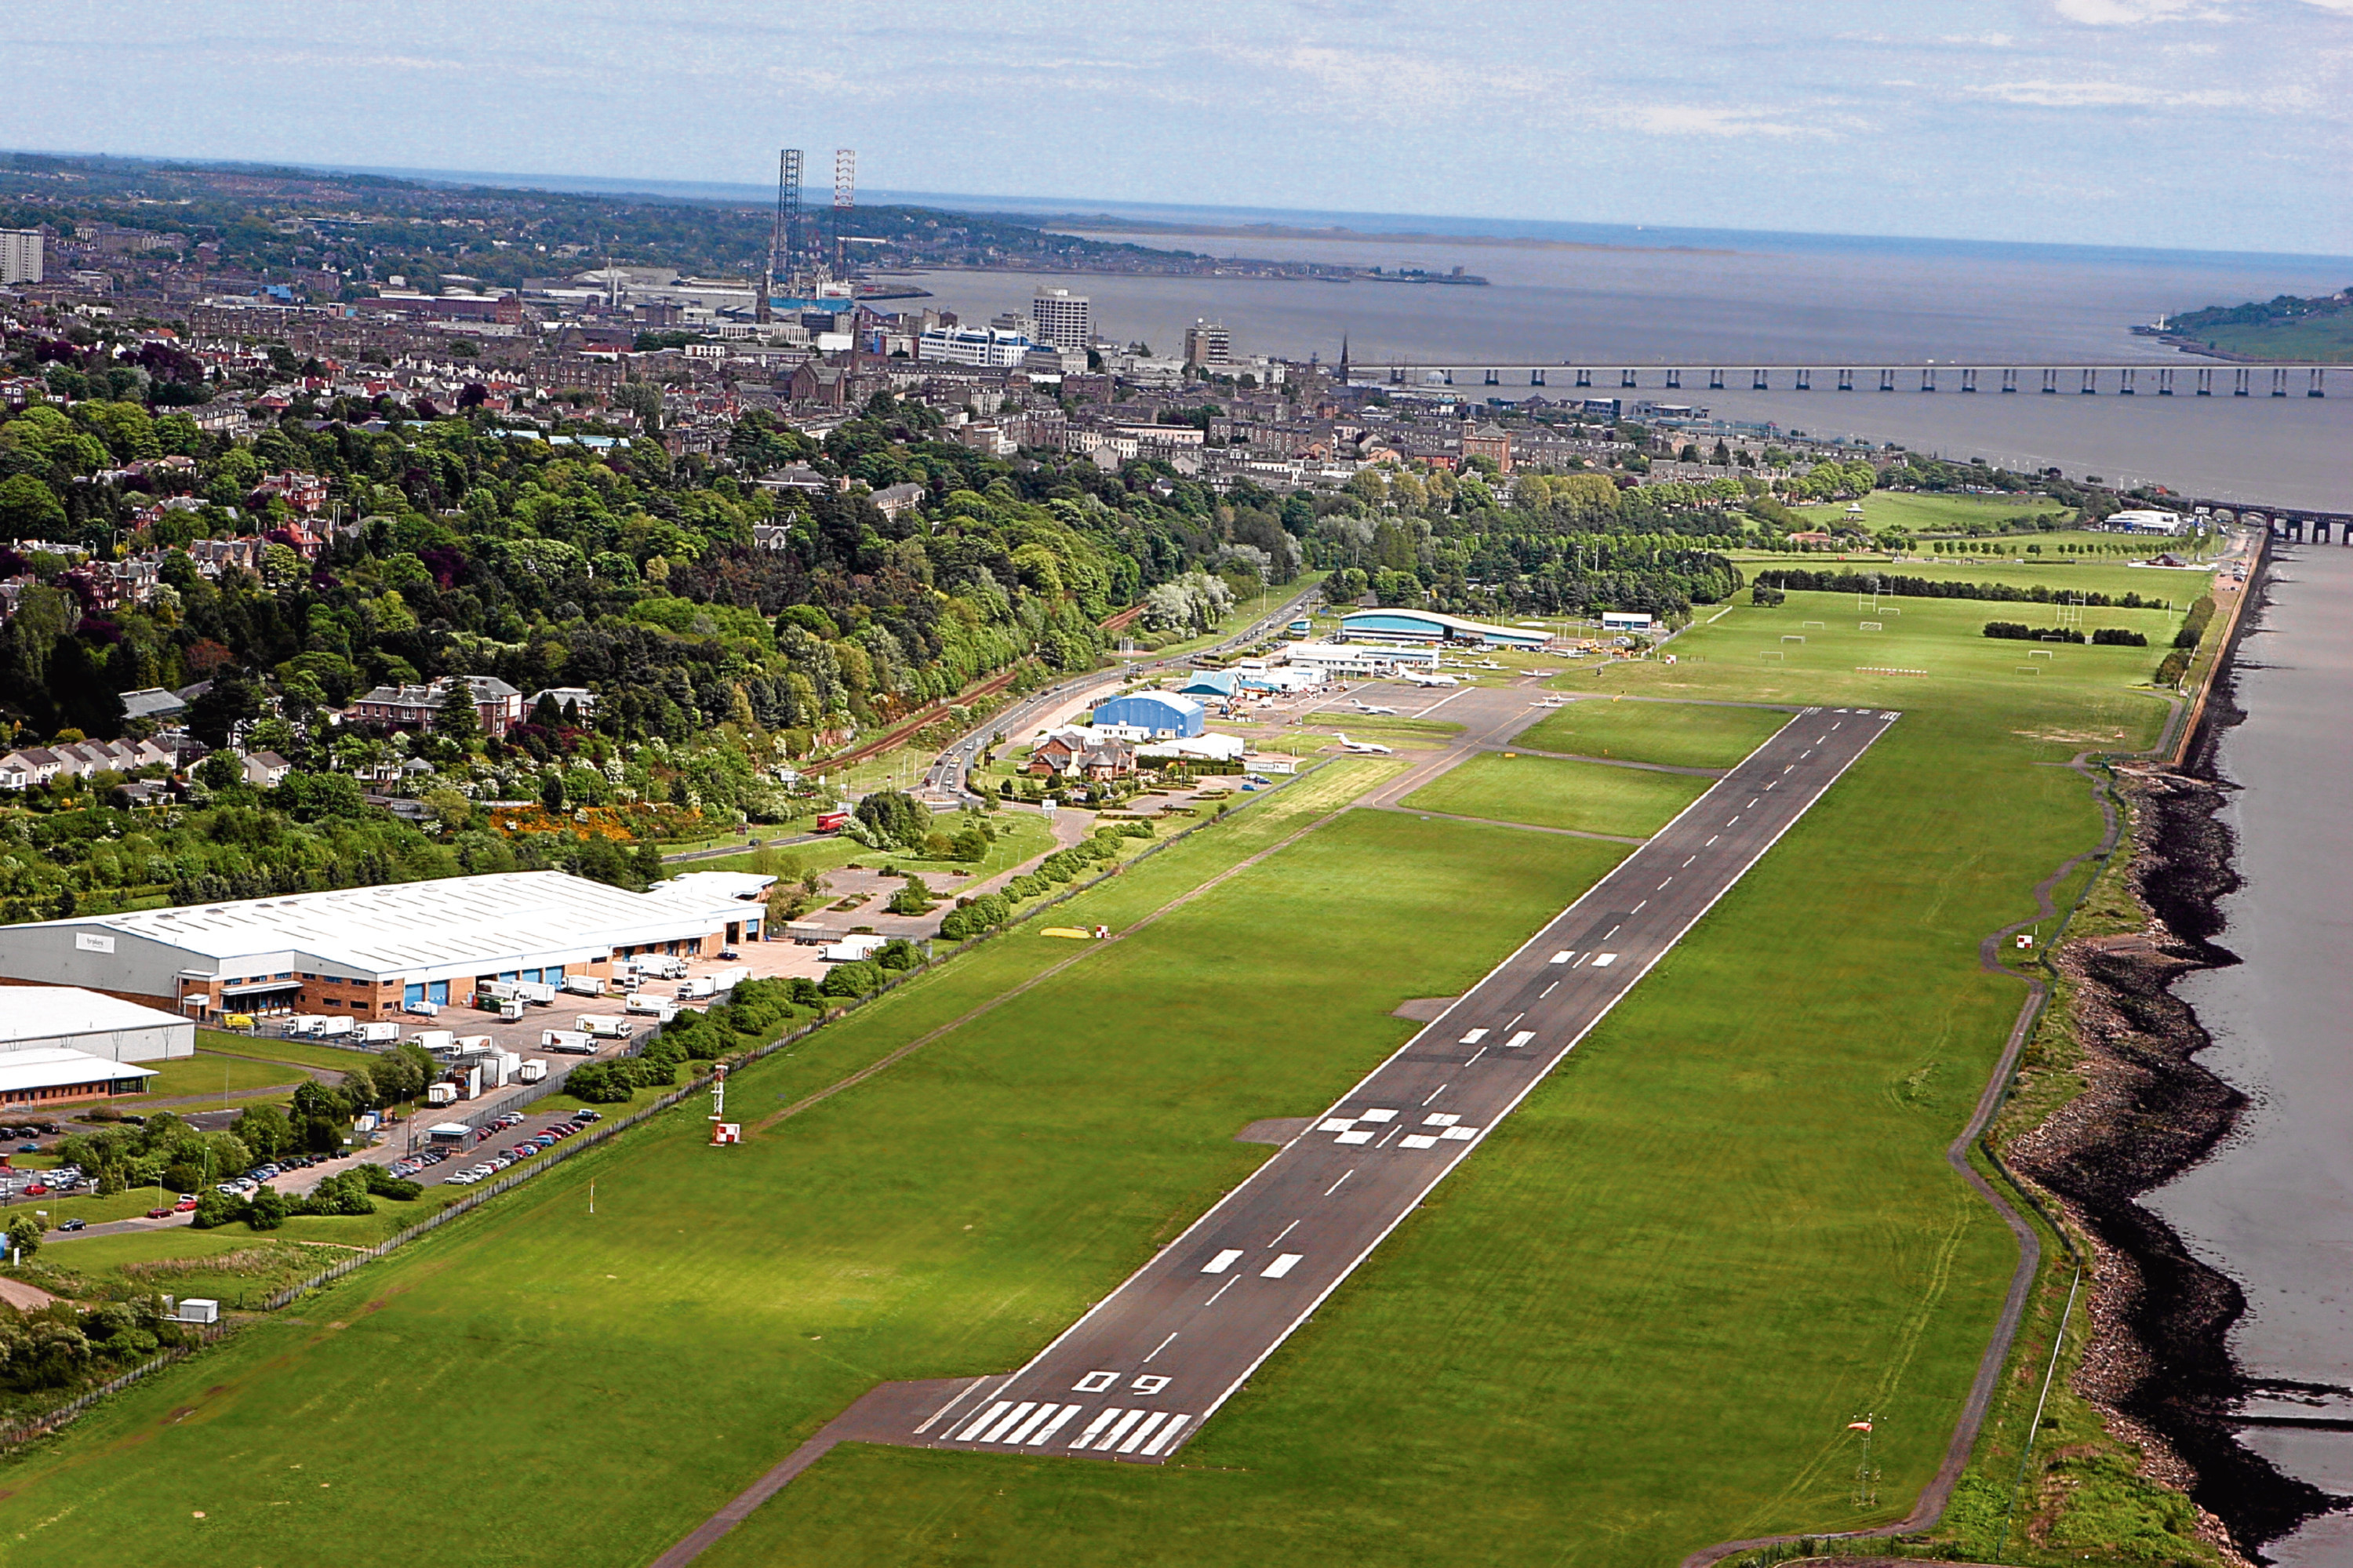 The runway at Dundee Airport